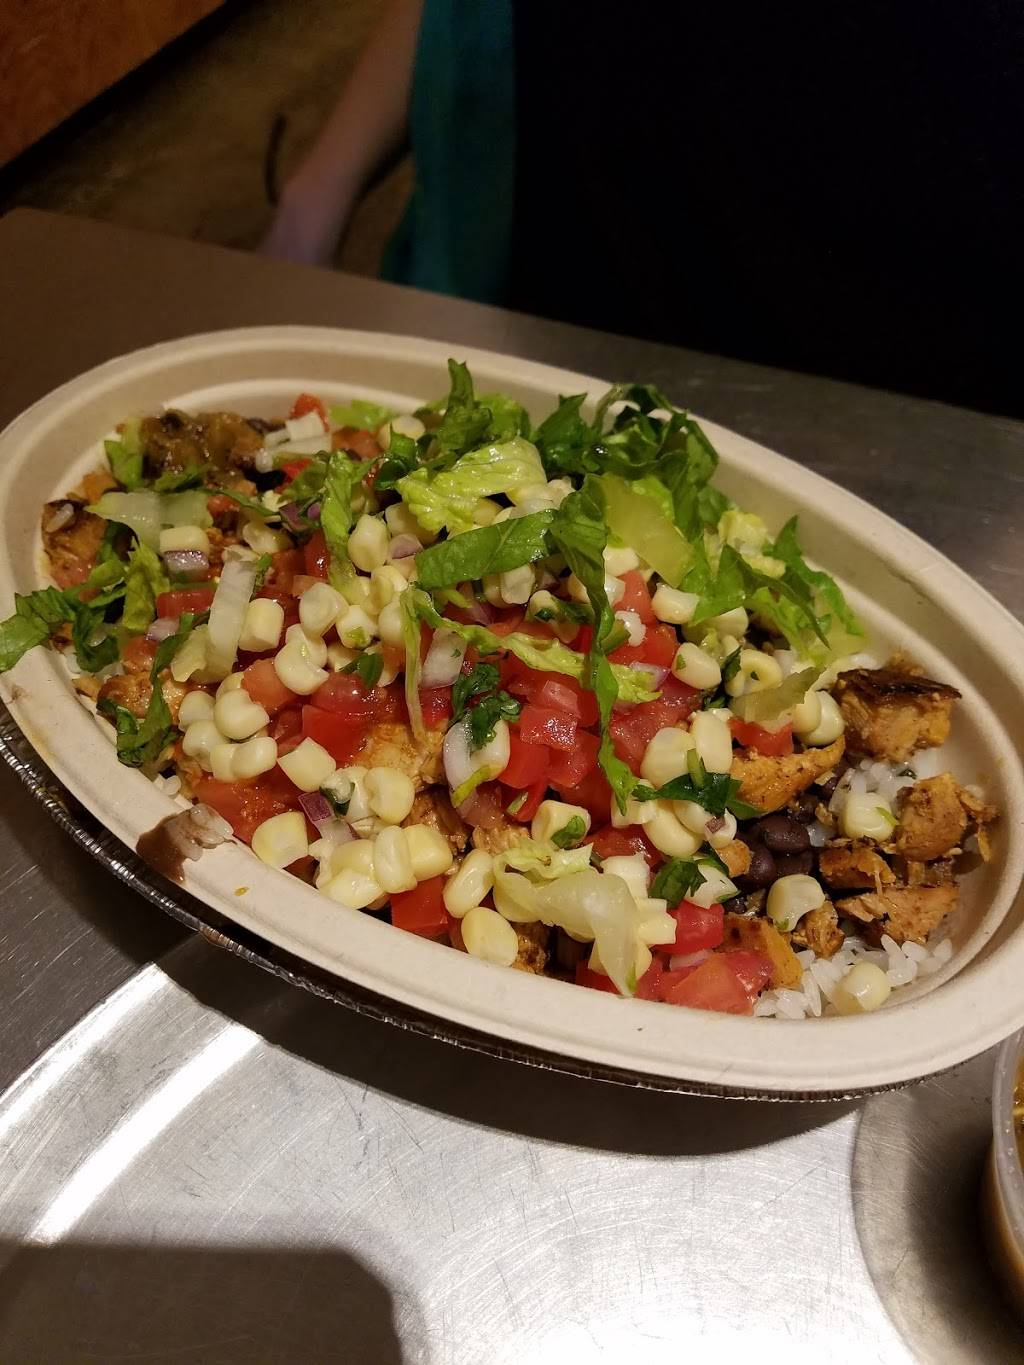 Chipotle Mexican Grill | restaurant | 394 Myrtle Ave, Brooklyn, NY 11205, USA | 7188553517 OR +1 718-855-3517